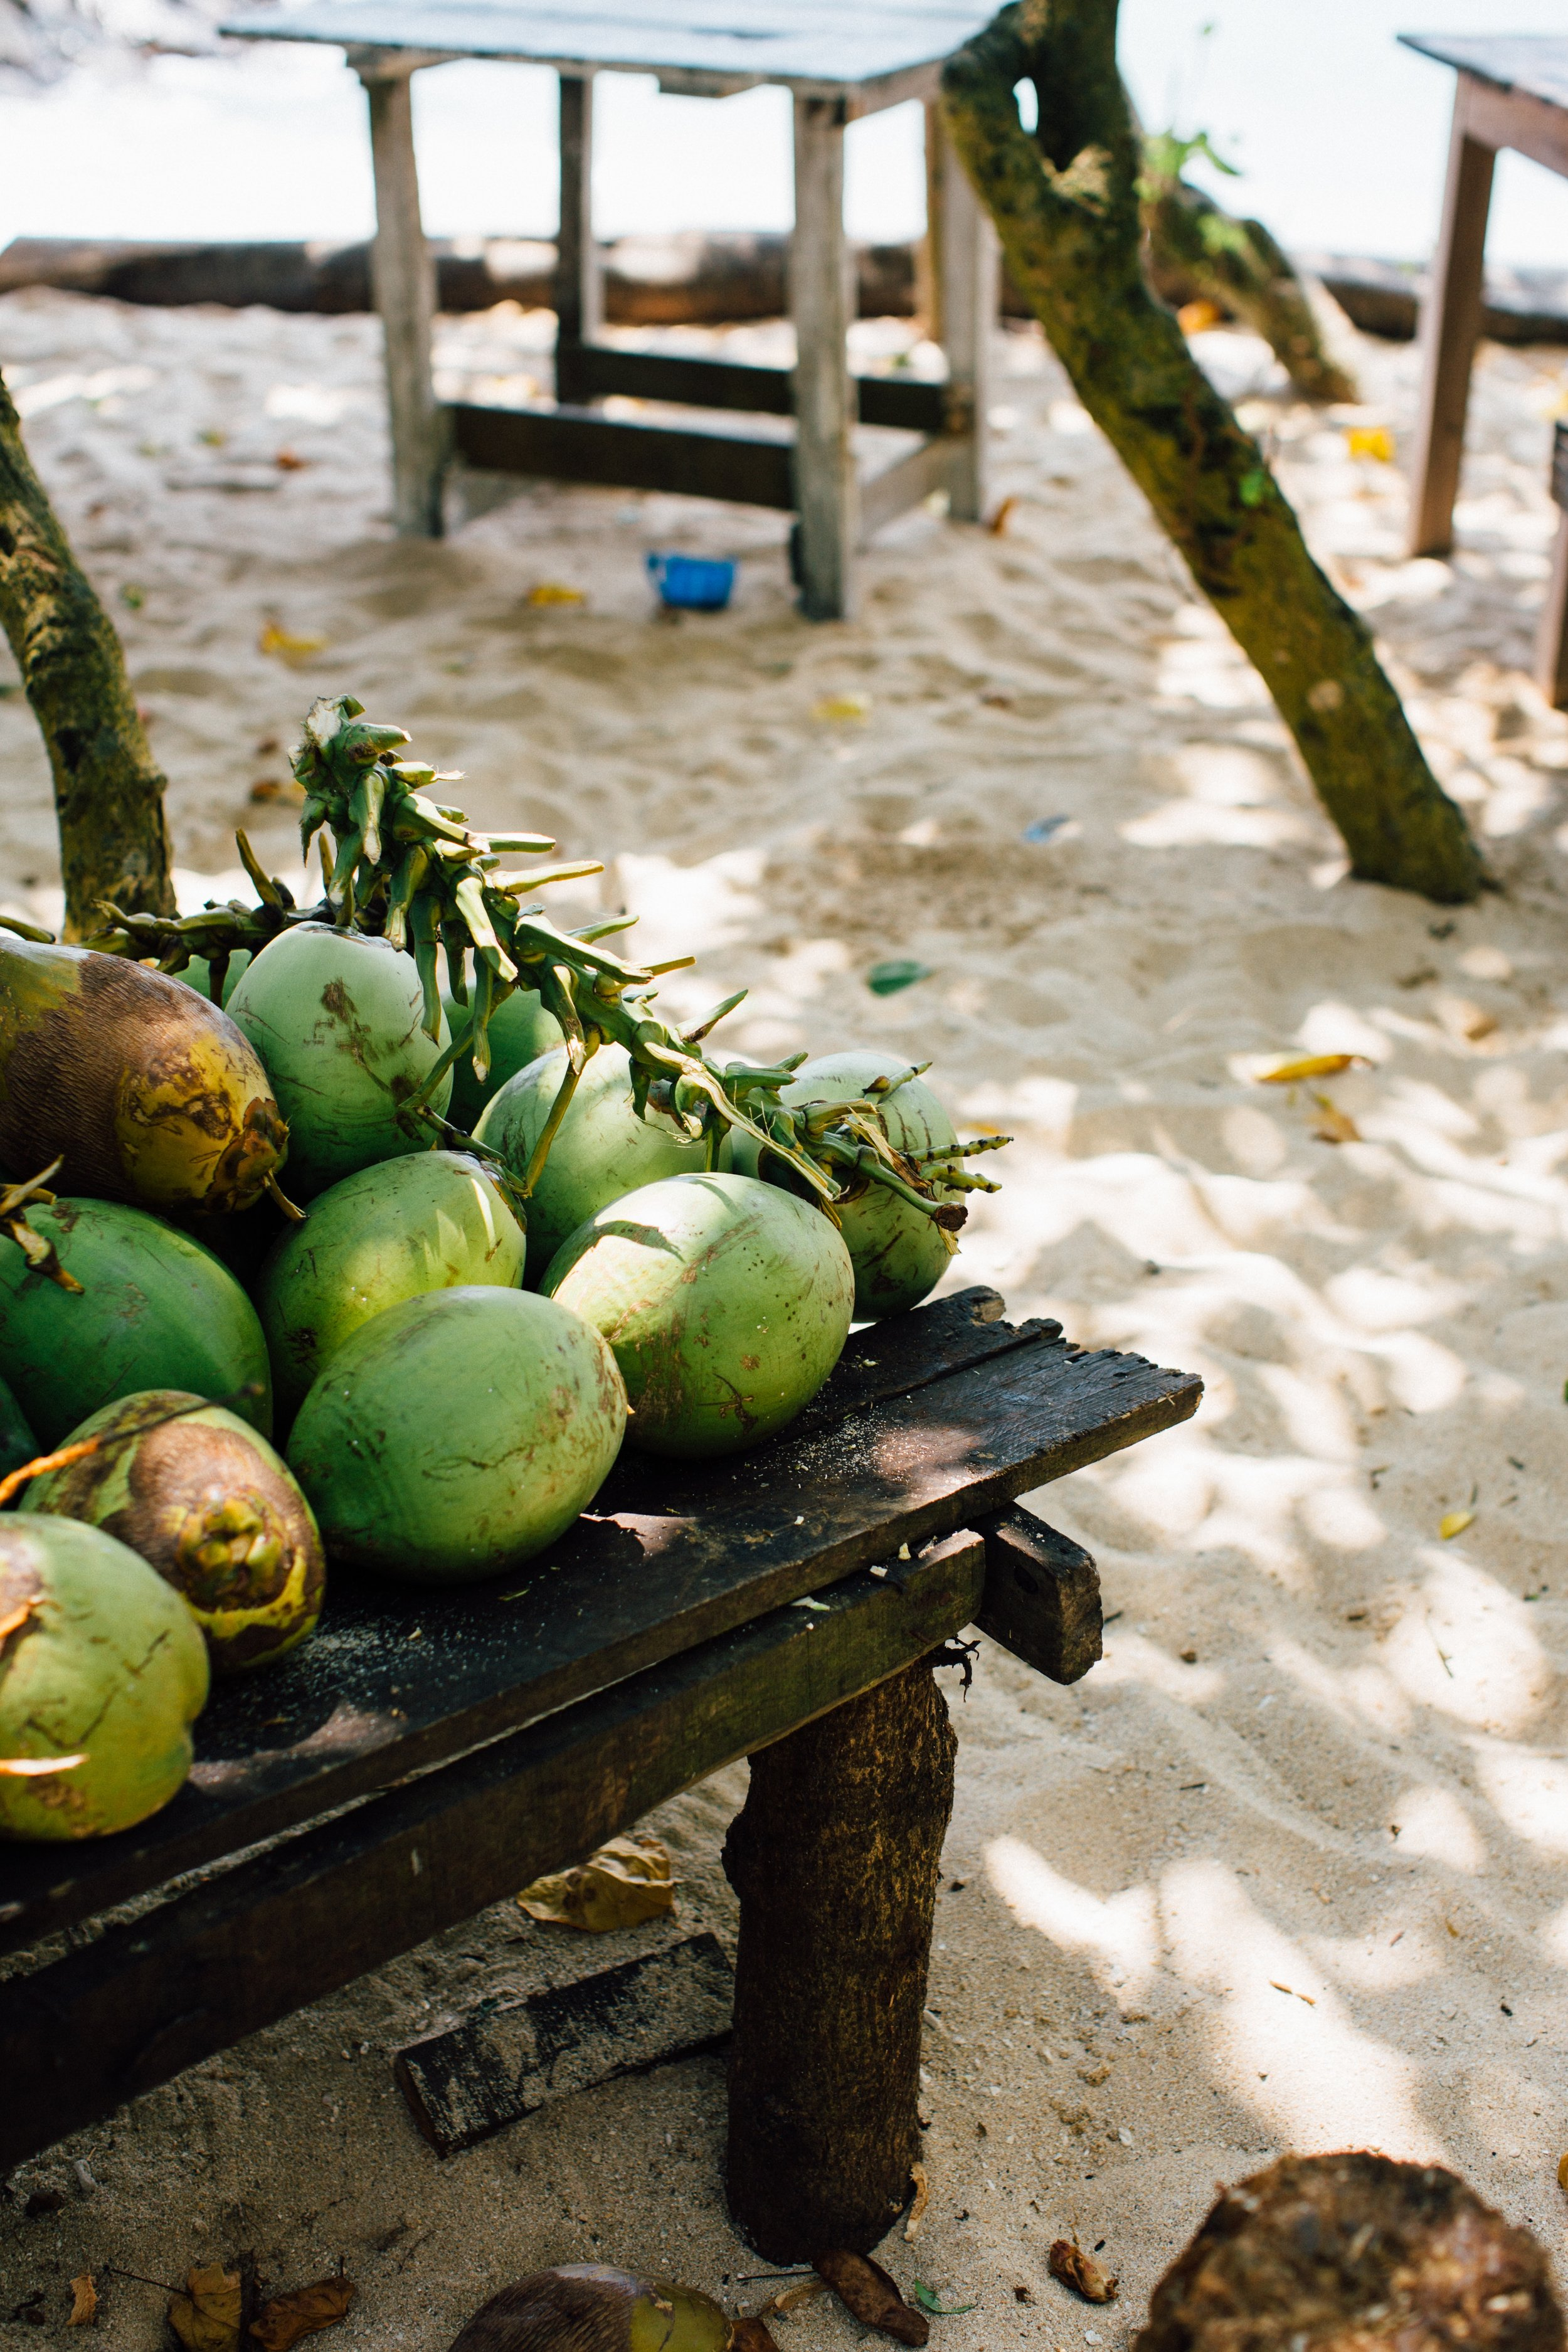 A VEGAN ADVENTURE IN SRI LANKA - An Exploration of Sri Lanka's Vegan Food, Environmental Conservation efforts & Zero-Waste Travel.Dates: January 25th 2020 to February 4th 2020 (11 DAYS)Location: Sri LankaGroup Size: 9-14 (small)Price: $2,375 USDAbout Us: Escape To provides vegan travel immersions with 100% vegan food, sustainability and vegan workshops and a commitment toward plastic-free travel.